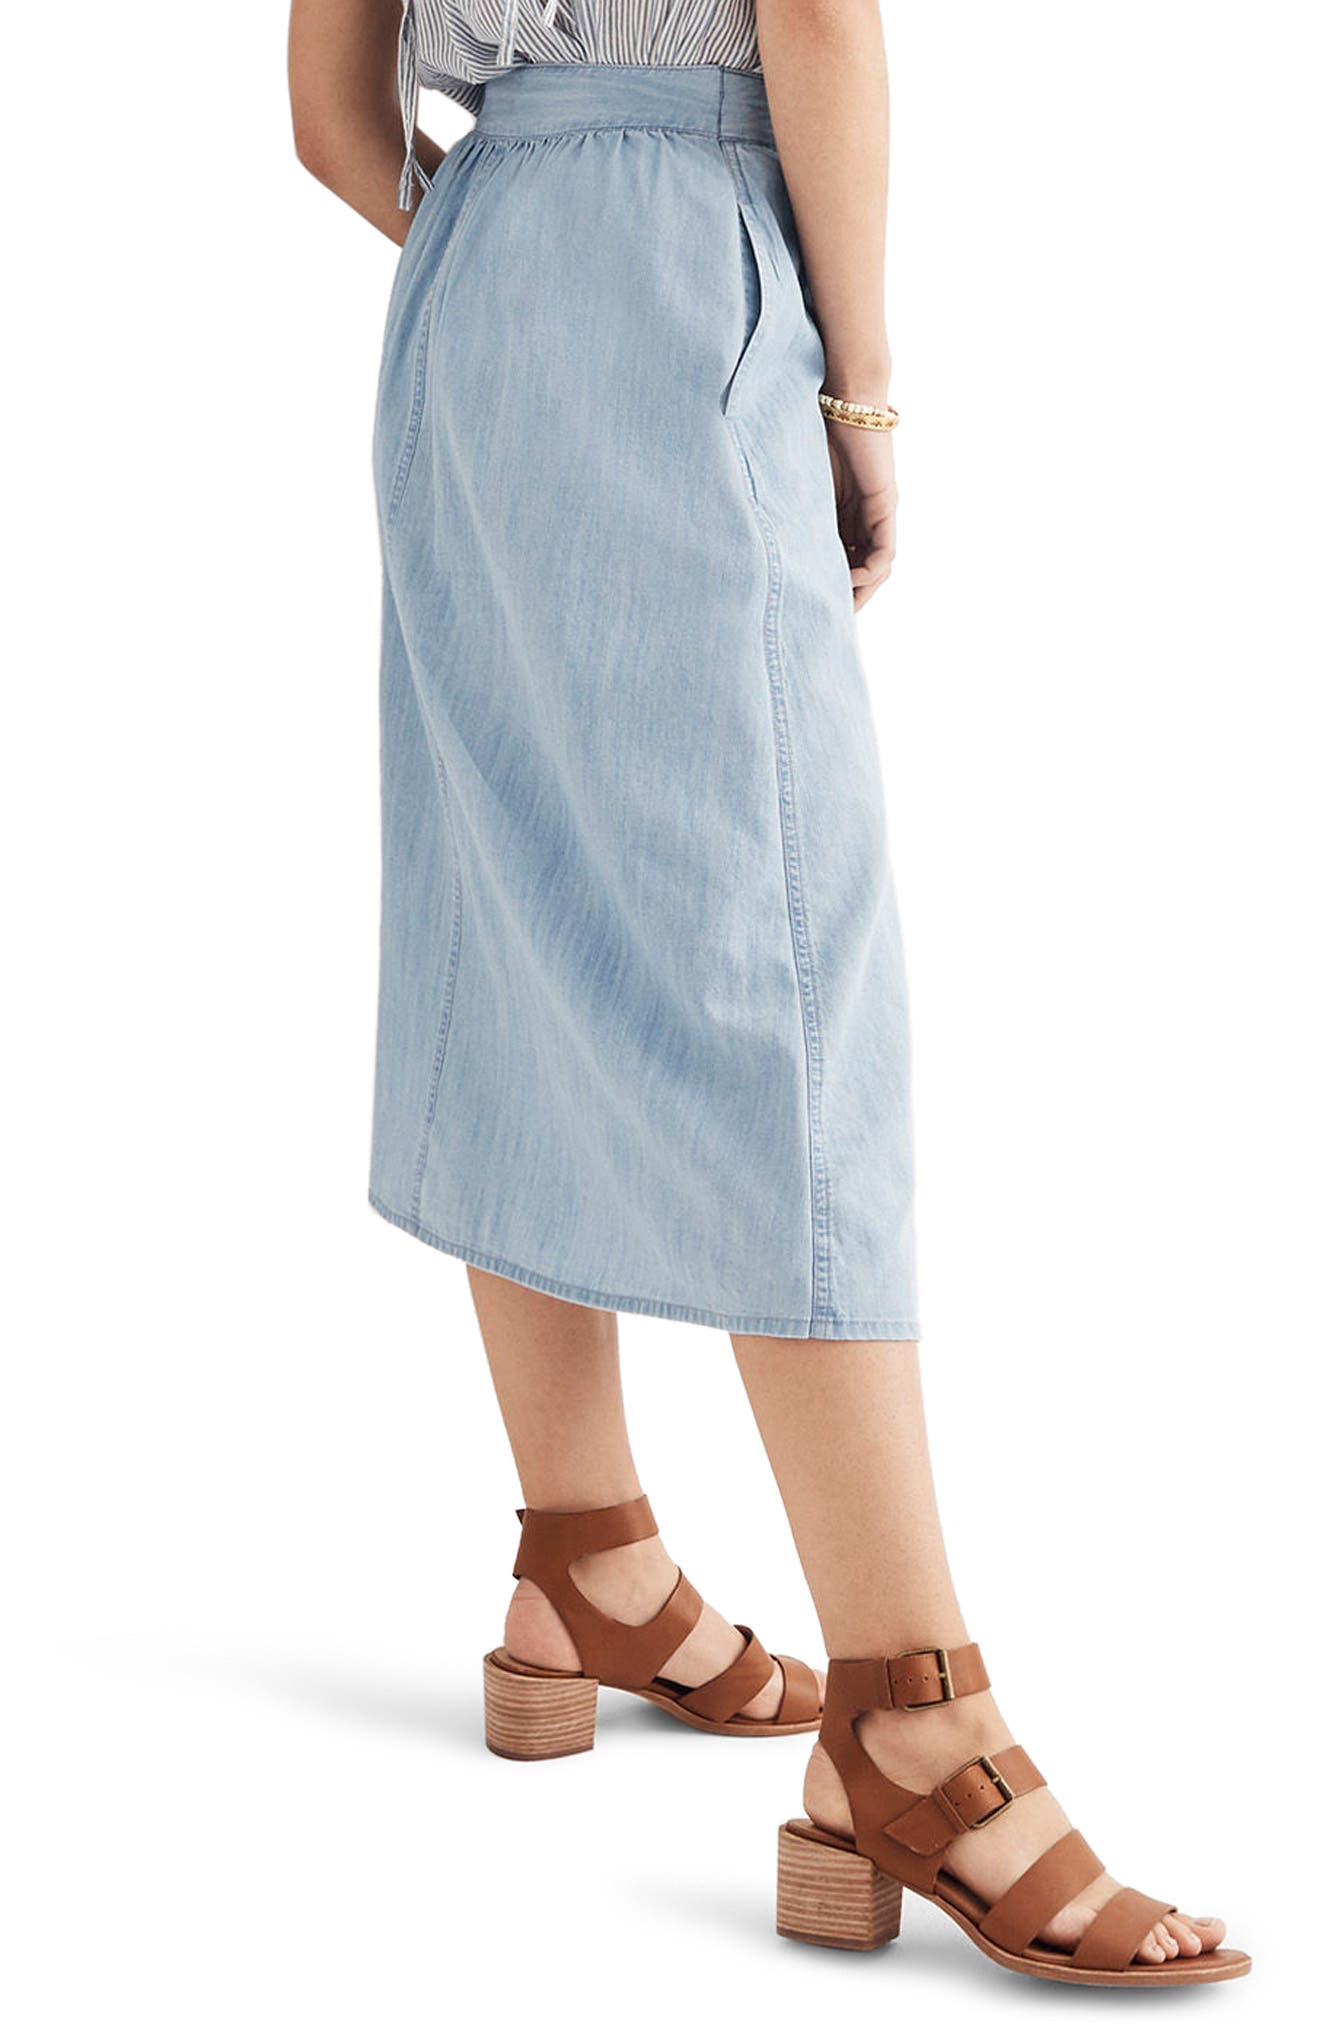 Button Front Midi Skirt,                             Alternate thumbnail 2, color,                             Altamira Wash